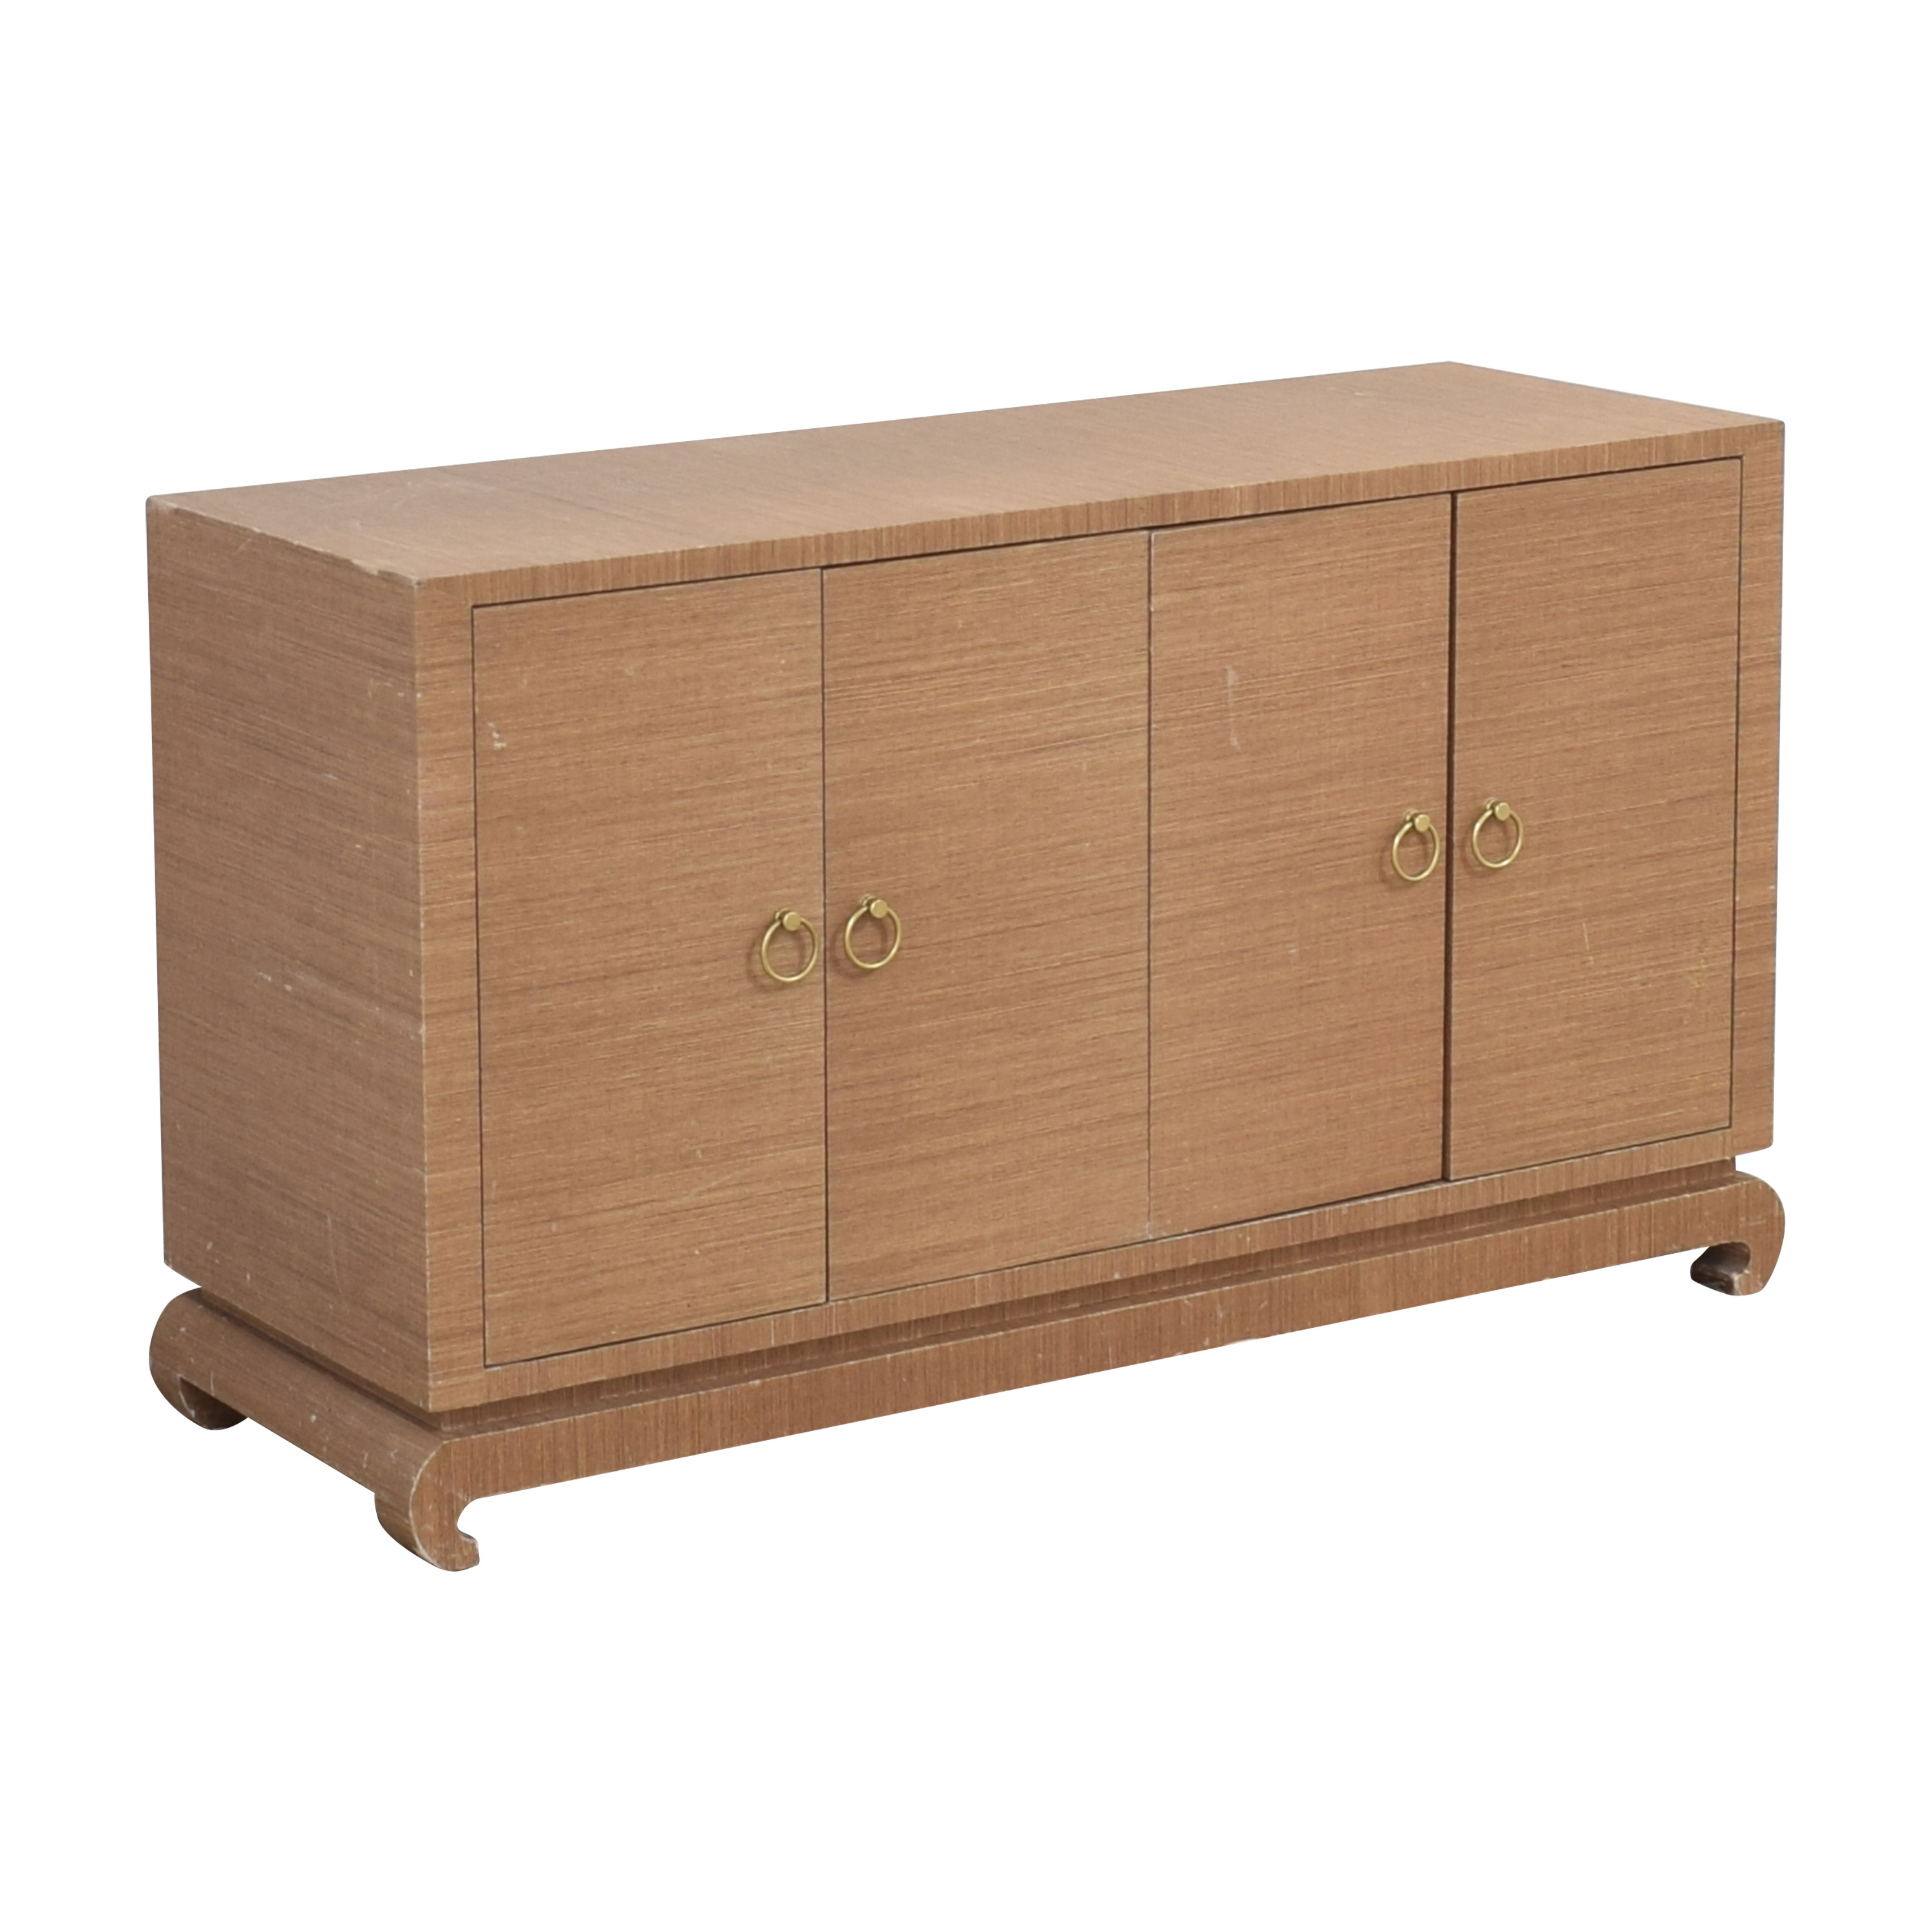 Bungalow 5 Meredith Four Door Cabinet / Cabinets & Sideboards